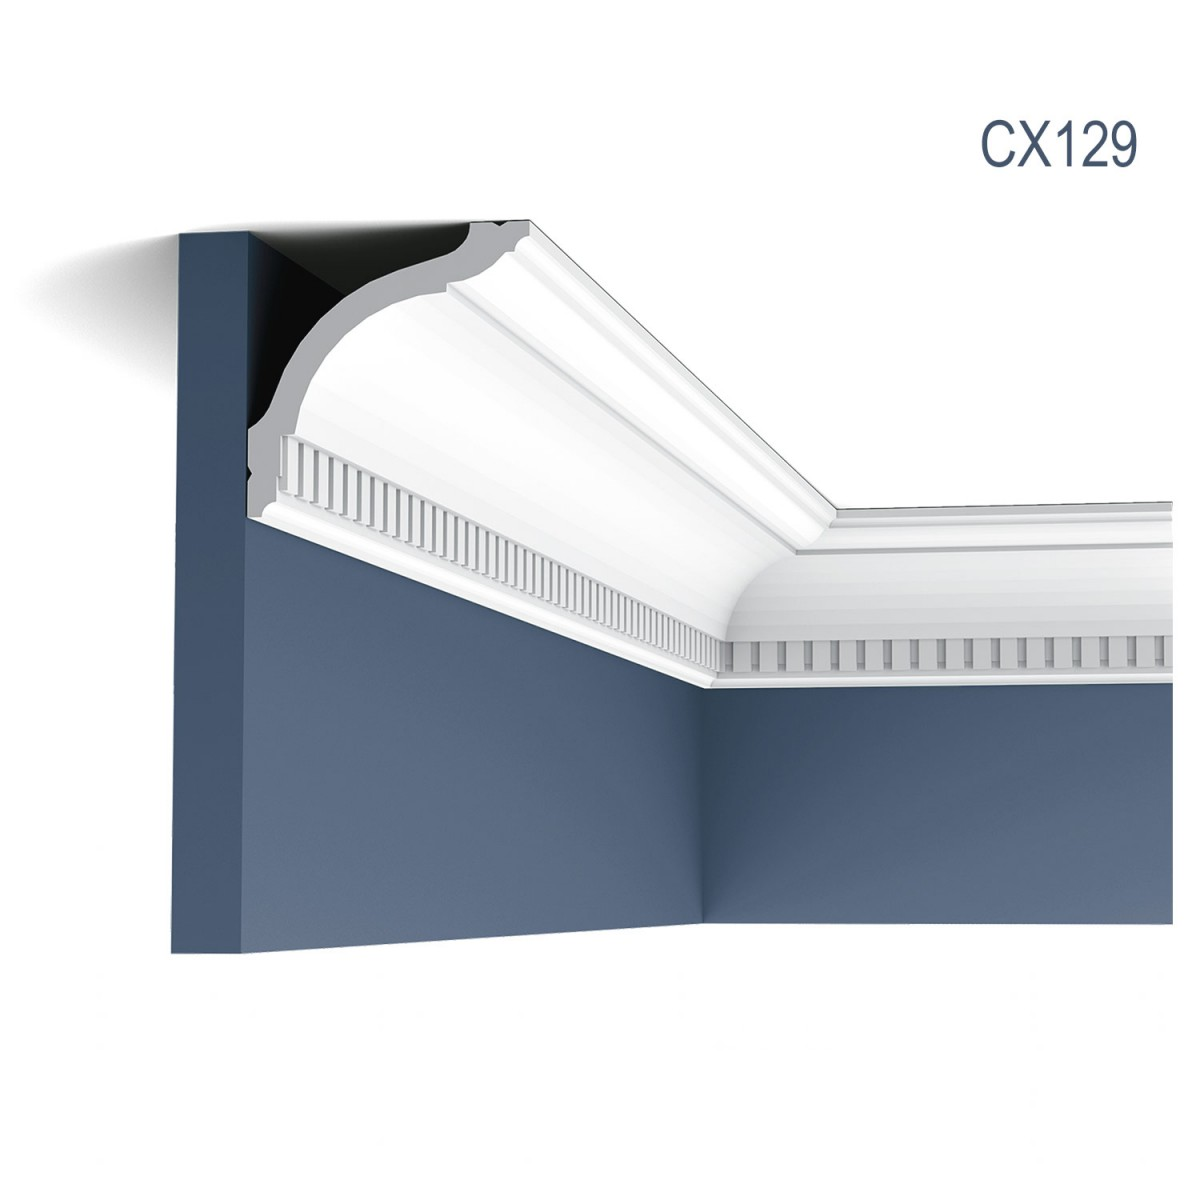 Cornisa Axxent CX129, Dimensiuni: 200 X 9.4 X 9.4 cm, Orac Decor